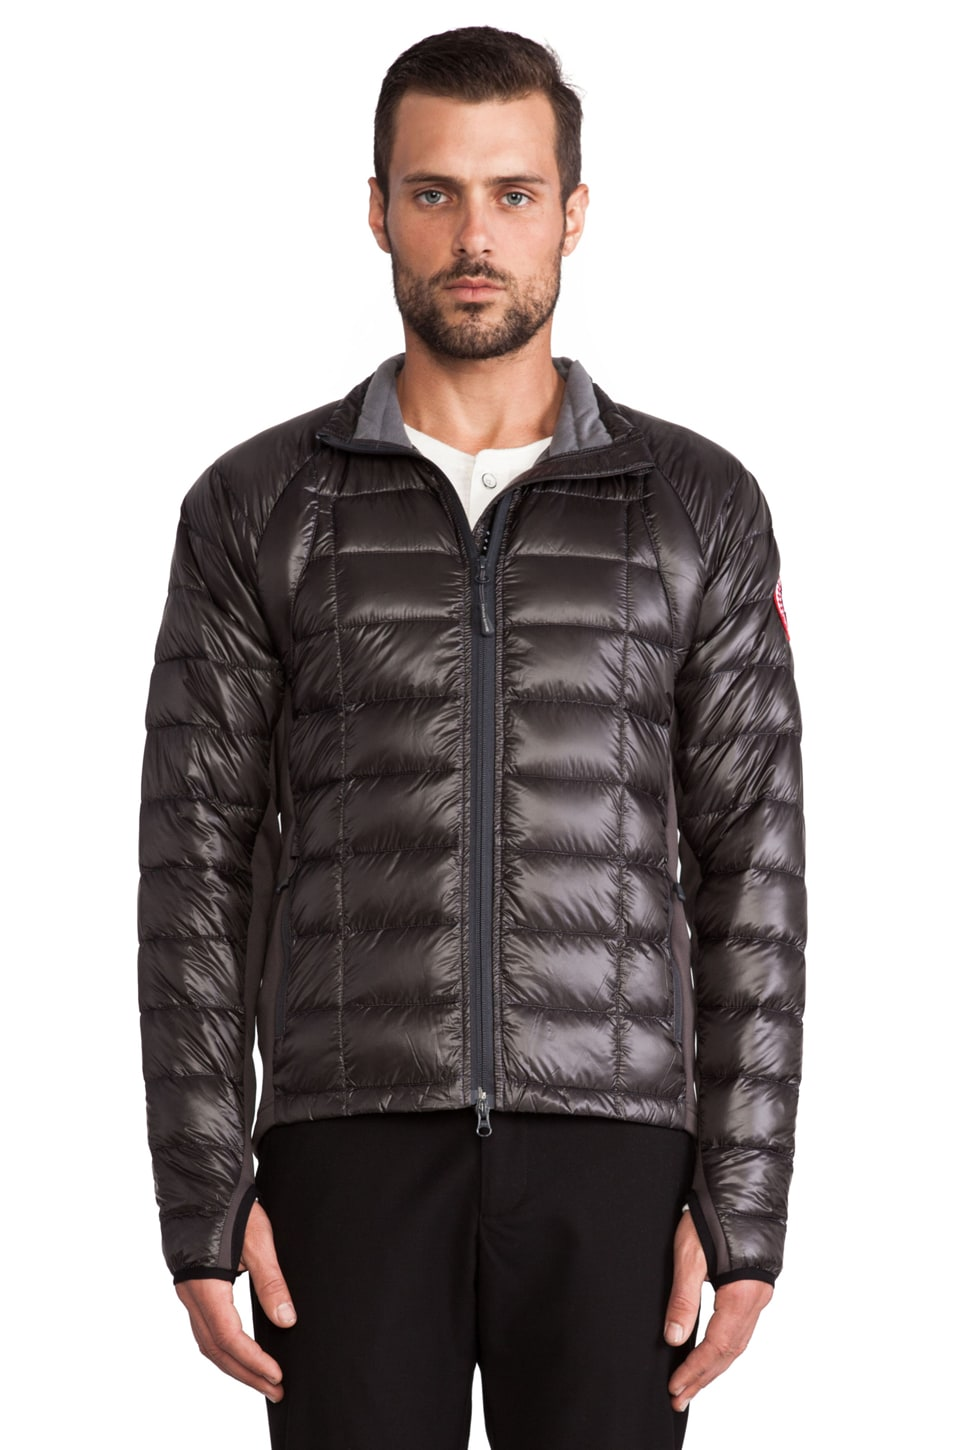 Canada Goose Hybridge Lite Jacket in Graphite